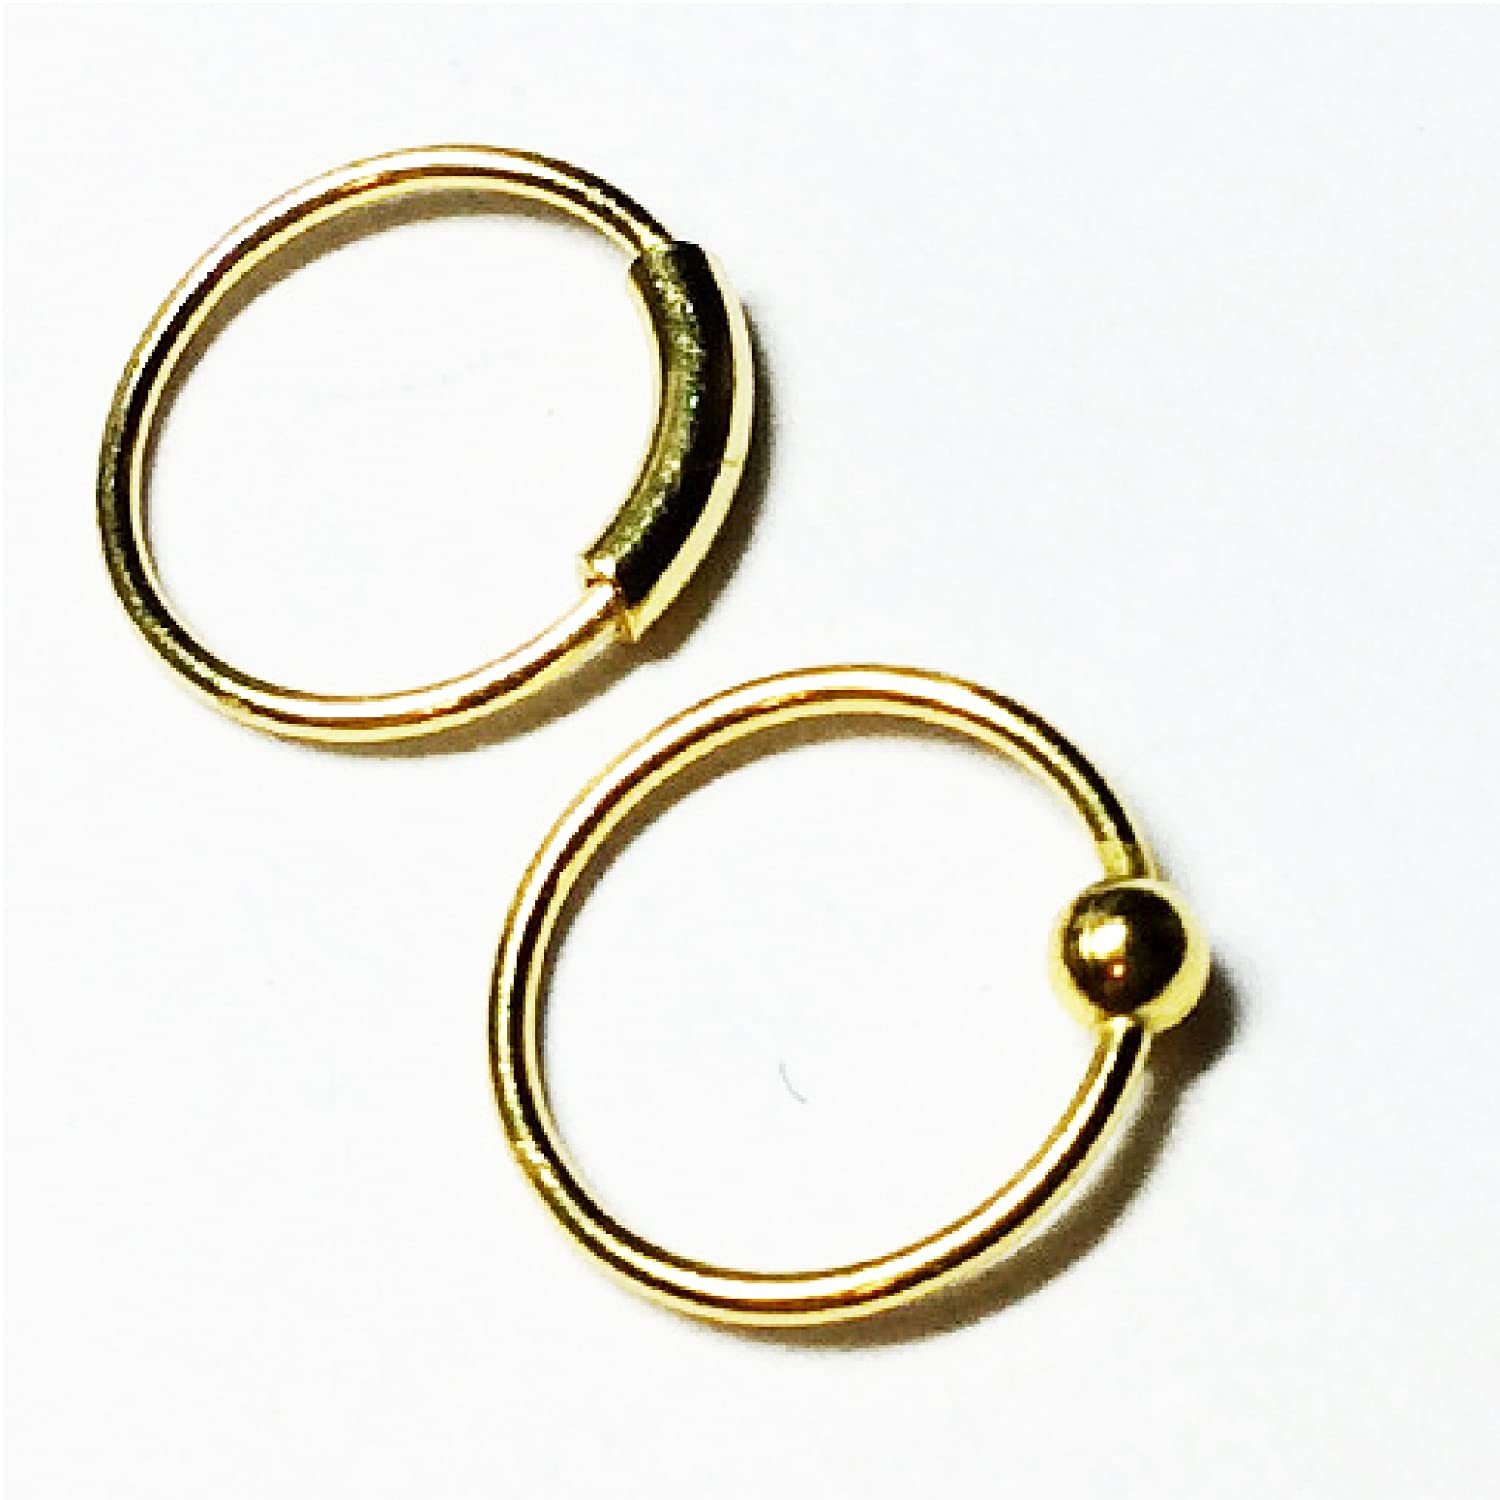 j simple rings product ejm maui minimalist plain gold jewely ellie